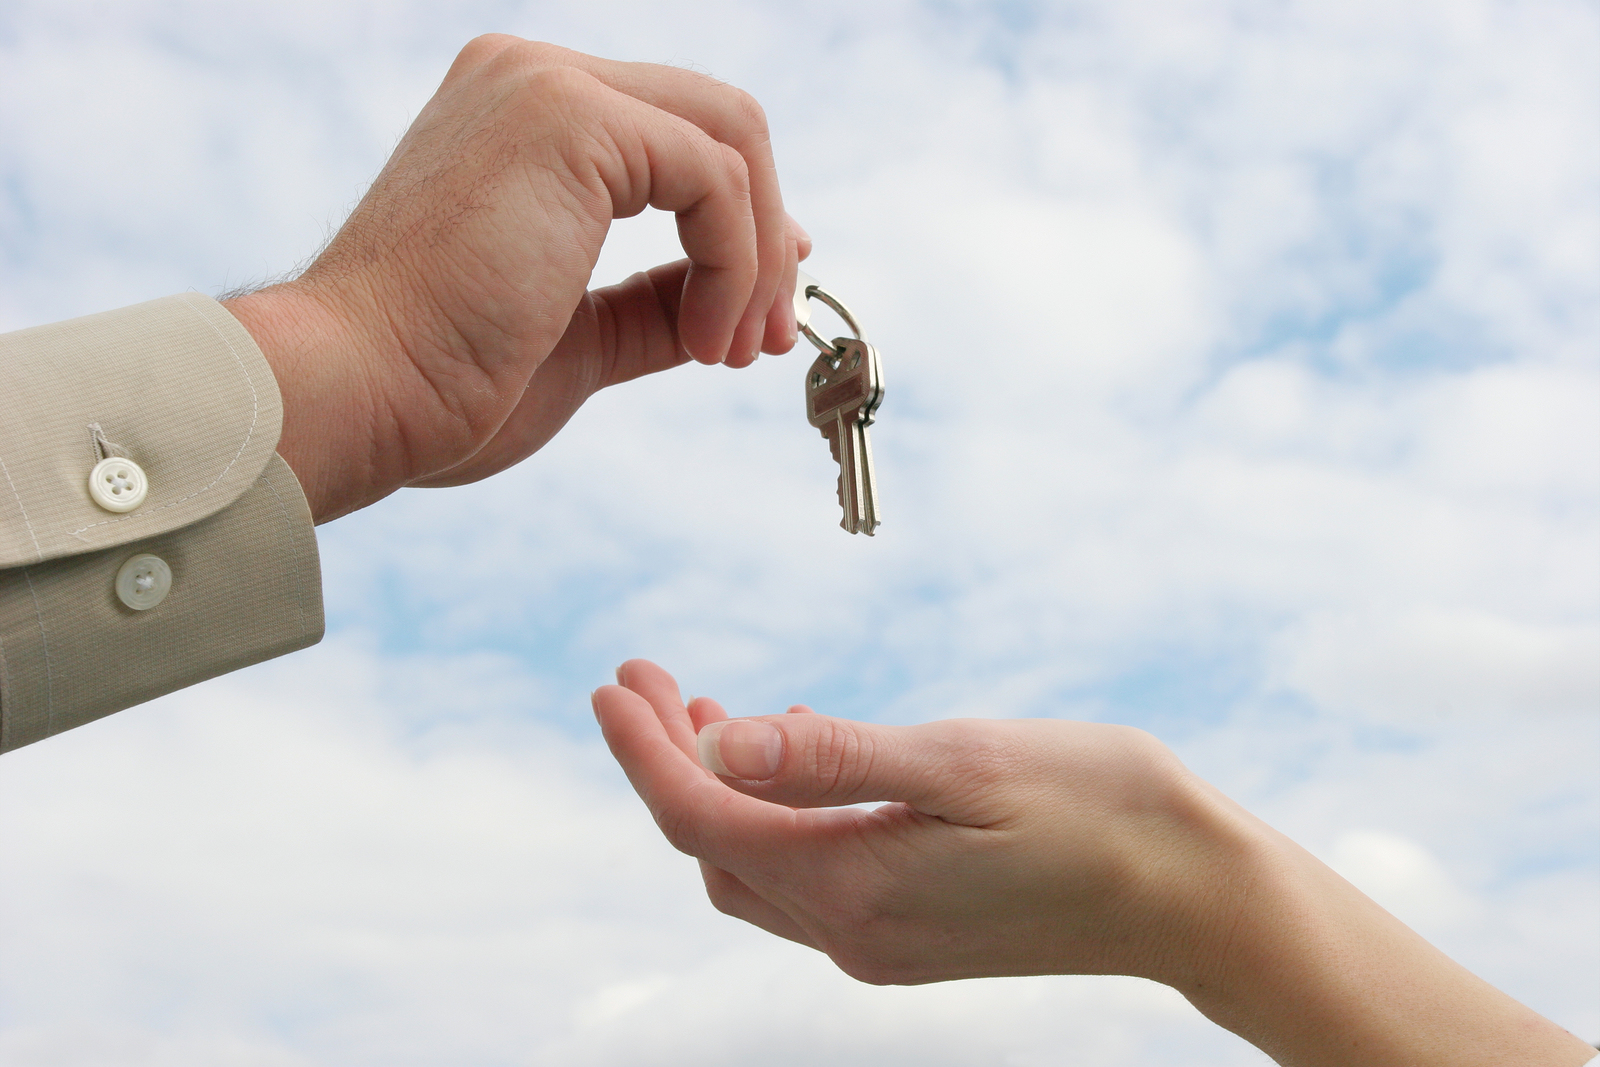 Rentals in Longmont co including duplexes, apartments, and houses